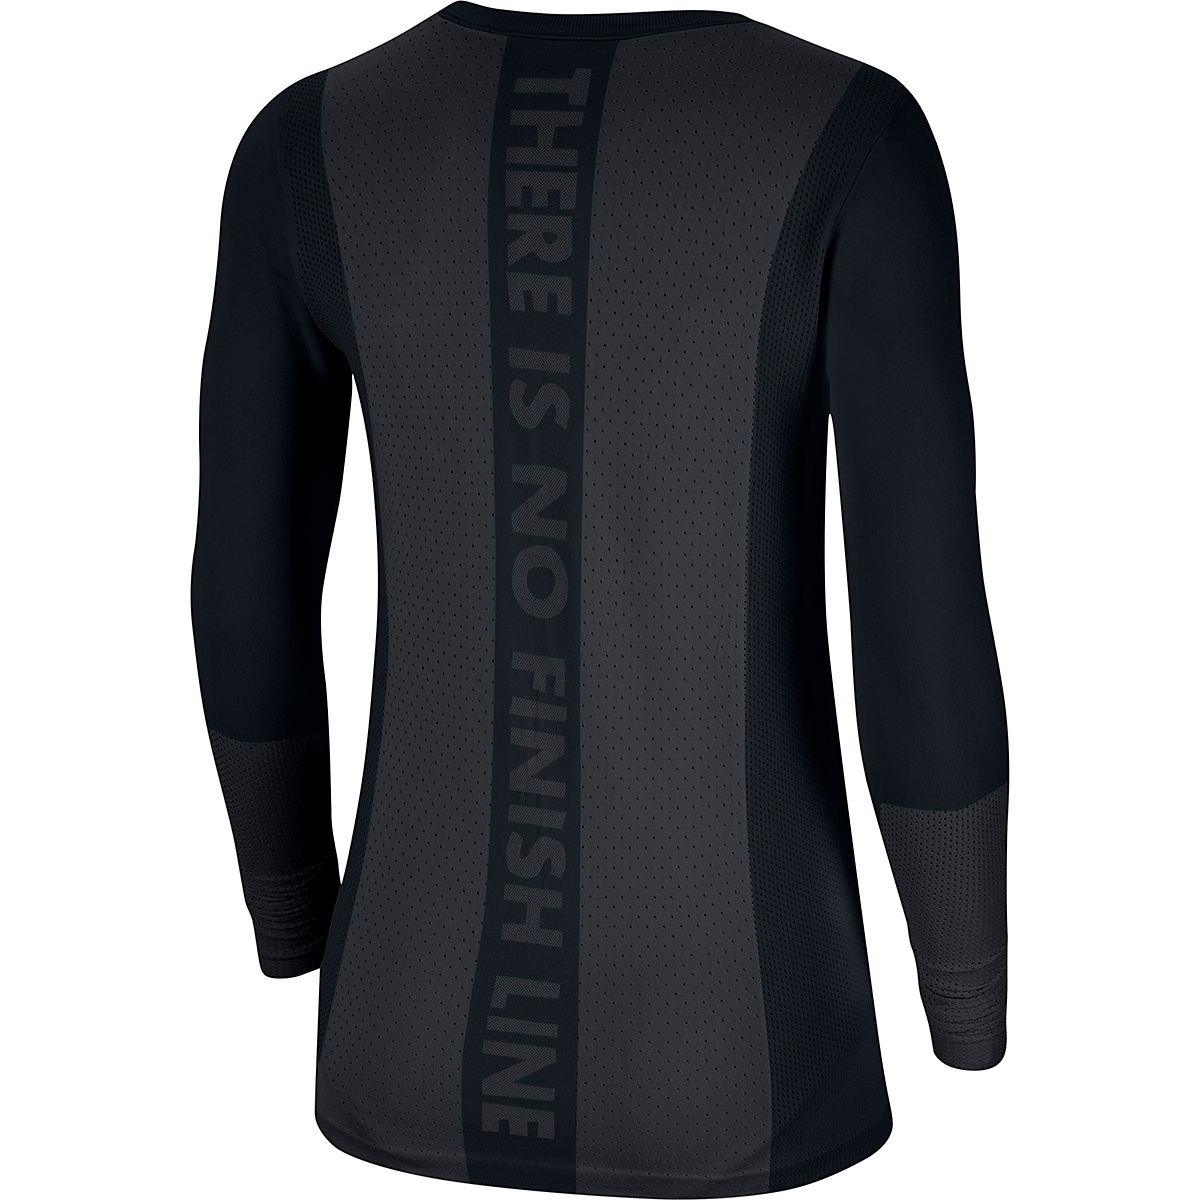 Women's Nike Infinite Running Top Long Sleeve - Color: Black - Size: XS, Black, large, image 4